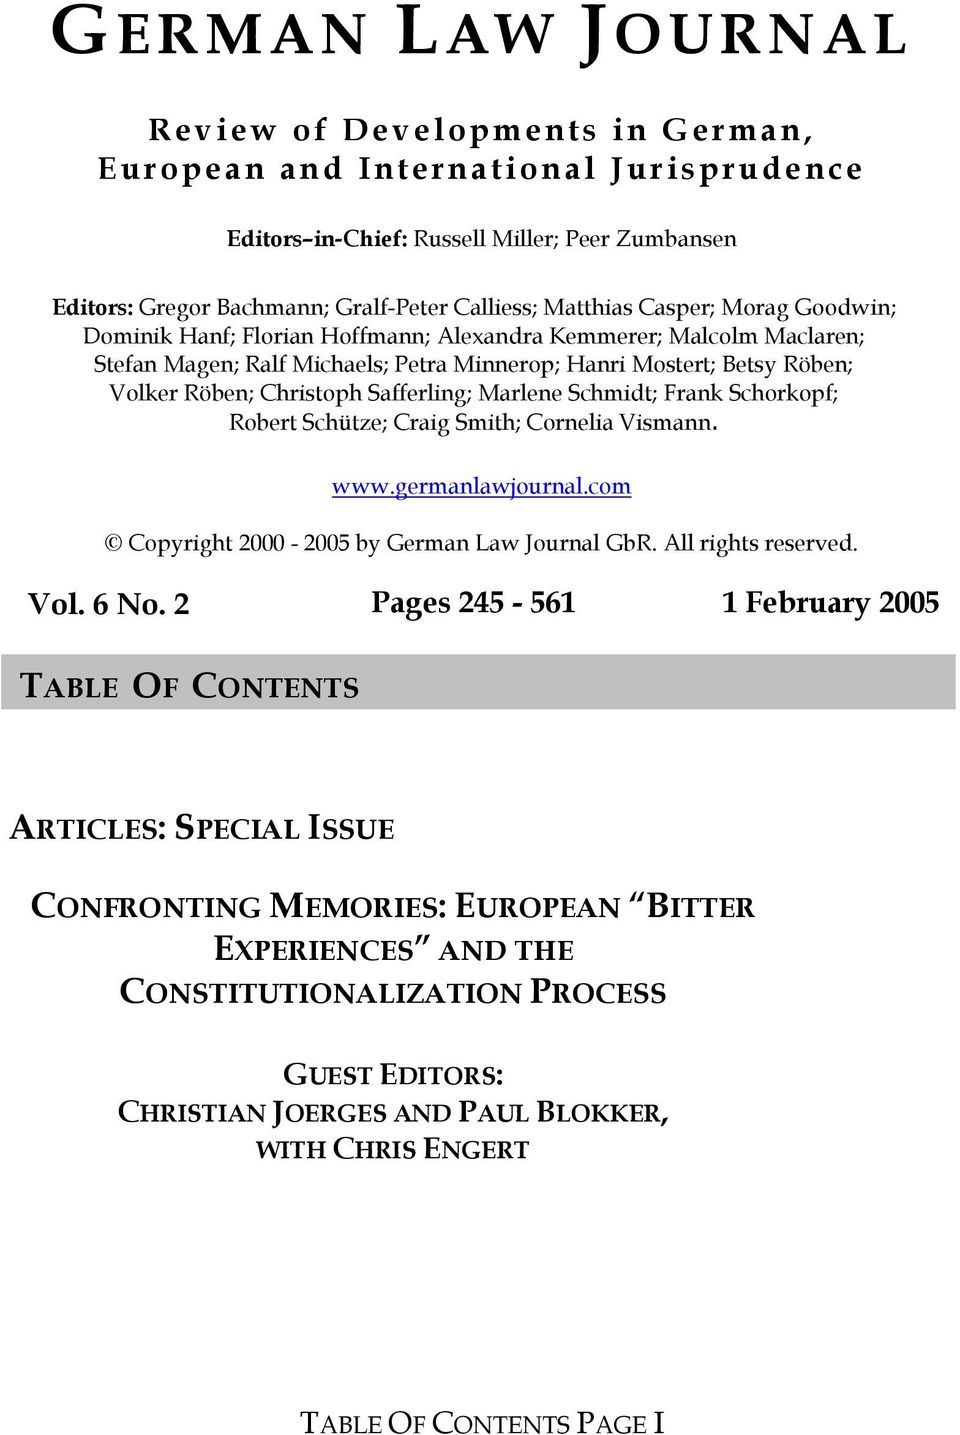 Safferling; Marlene Schmidt; Frank Schorkopf; Robert Schütze; Craig Smith; Cornelia Vismann. www.germanlawjournal.com Copyright 2000-2005 by German Law Journal GbR. All rights reserved. Vol. 6 No.